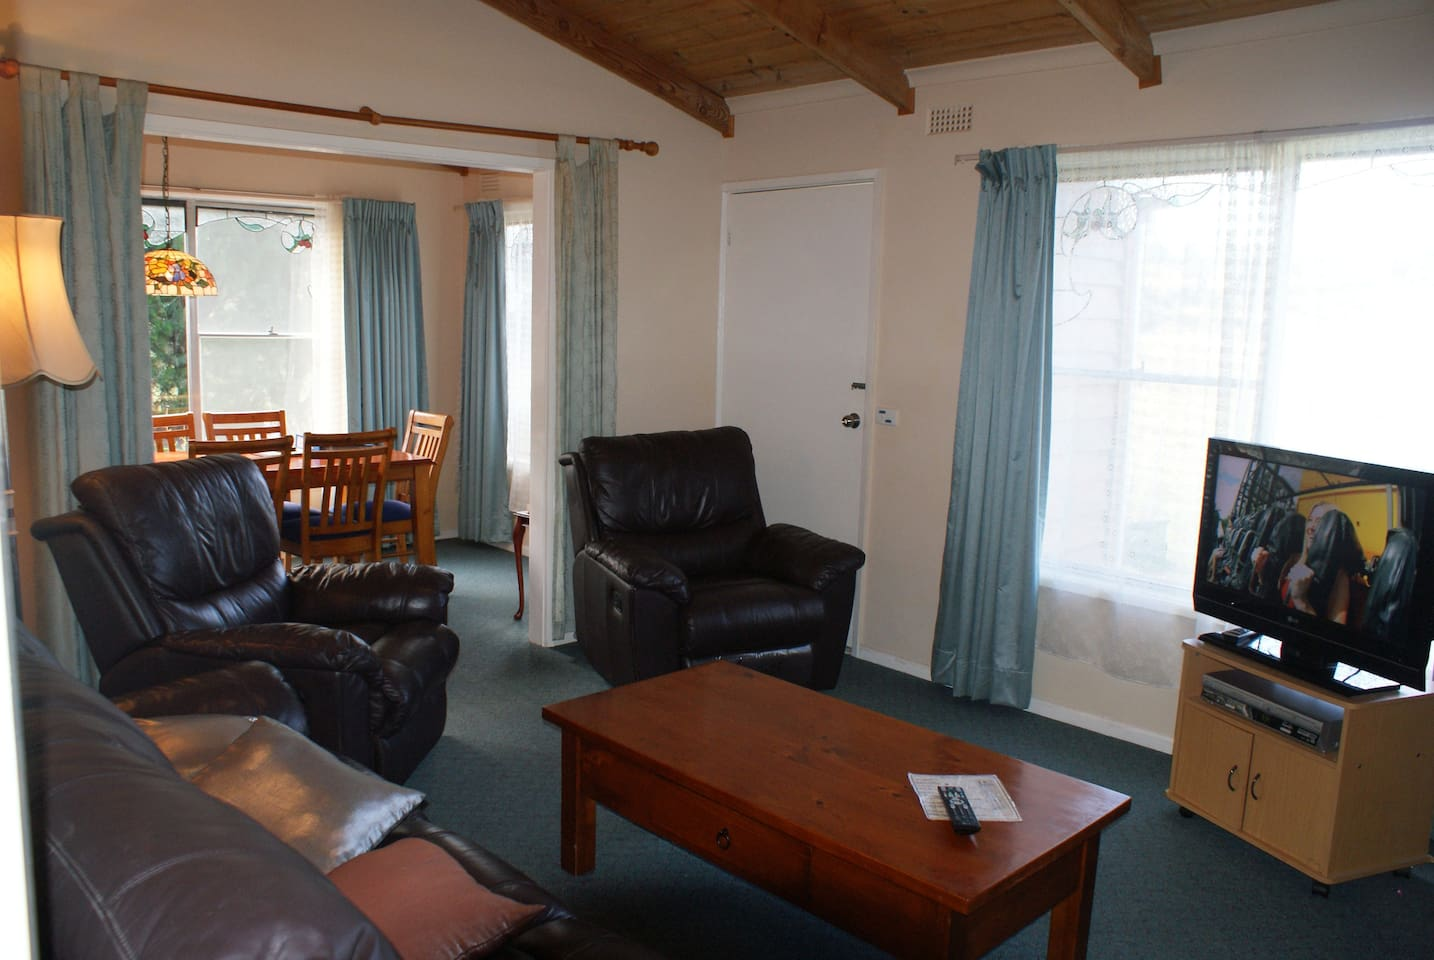 Aaa Granary Accommodation The Last Resort Aaa Granary Gumnut 2 Bedroom Houses For Rent In Promised